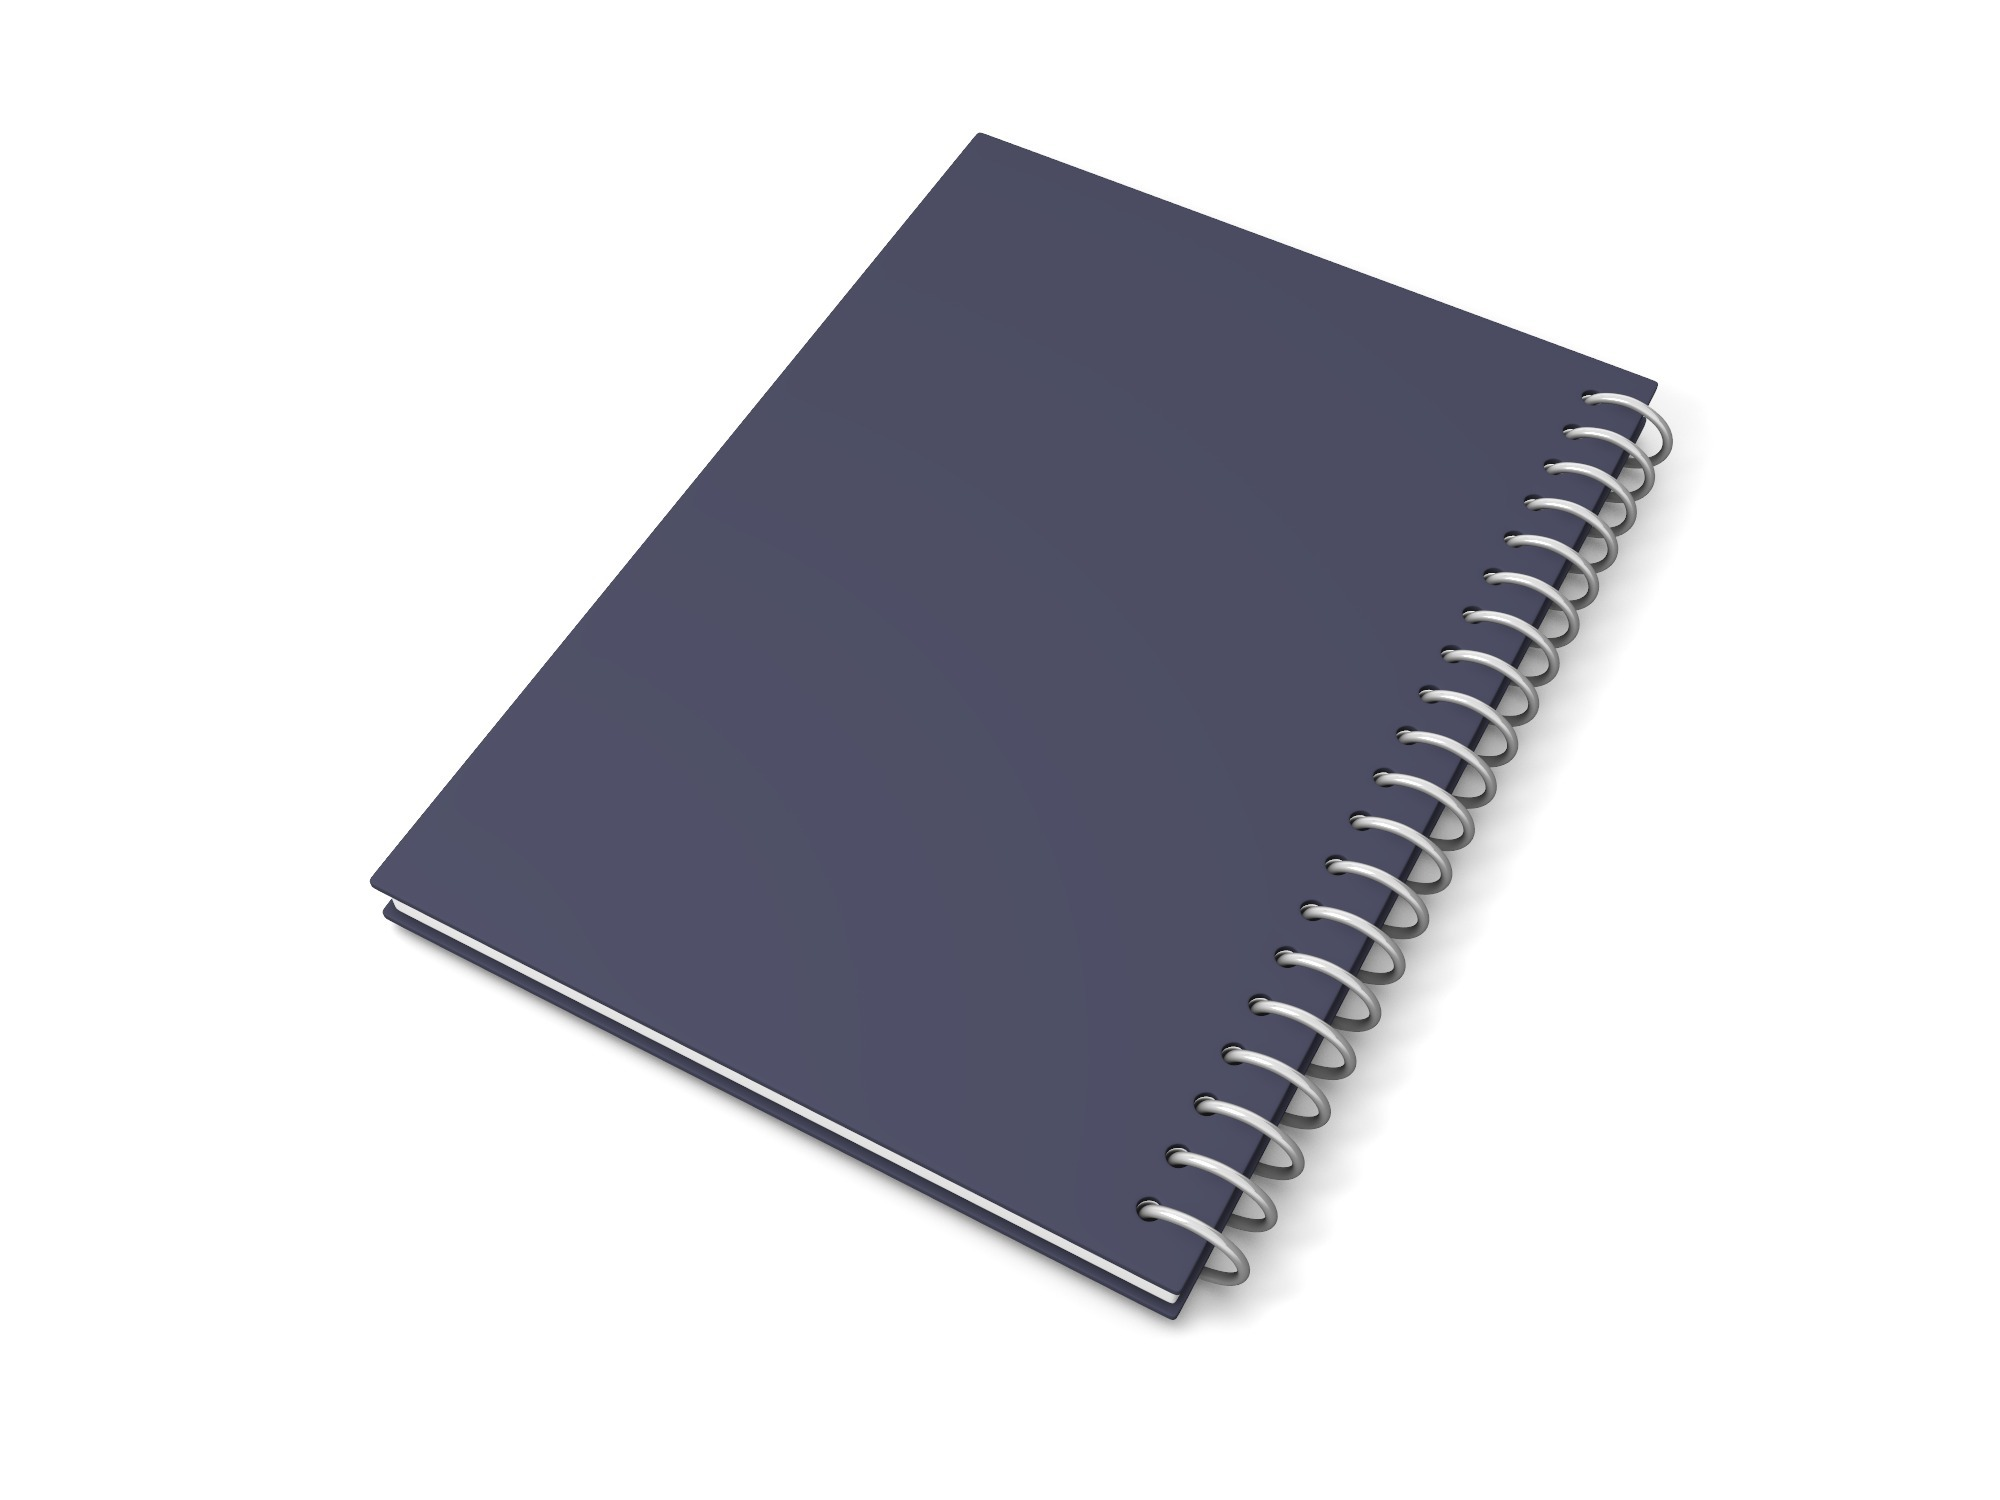 Medium notebook with spiral binding - 3D design by Vectary assets Aug 14, 2018